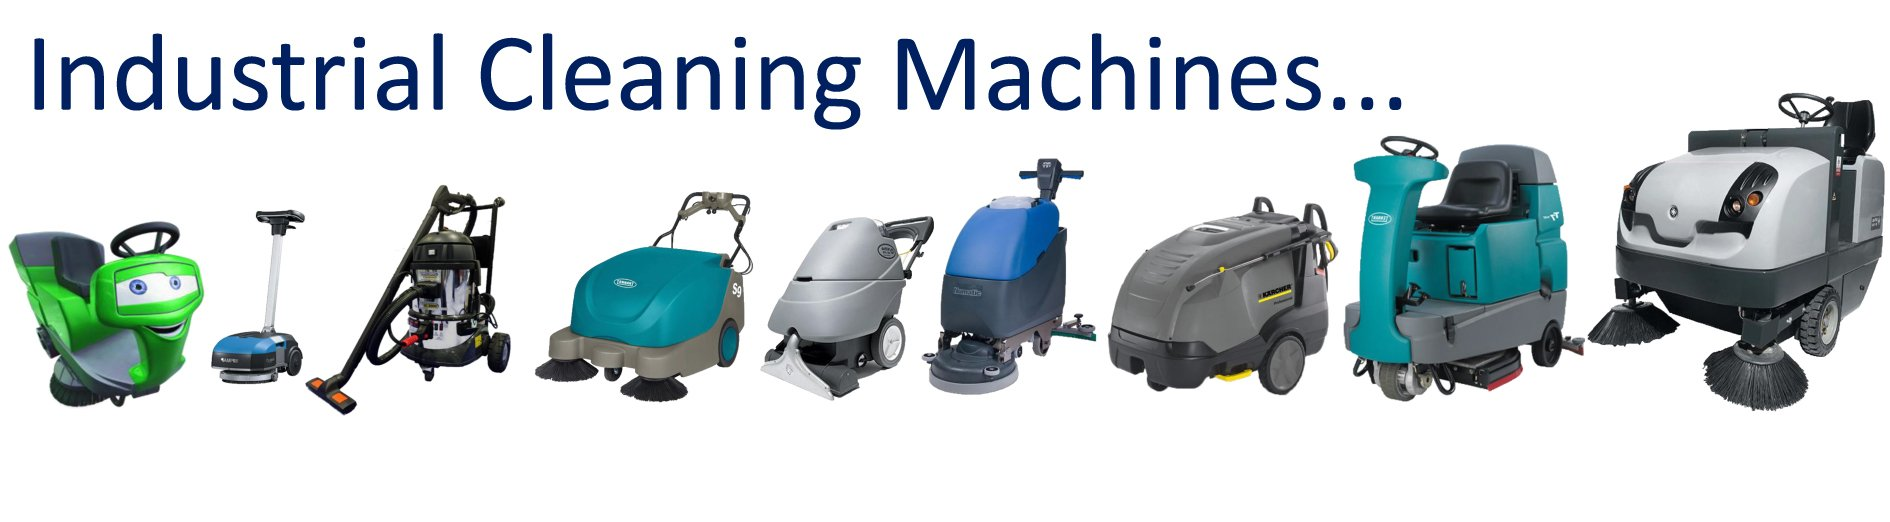 Industrial-Cleaning-Machines-v3